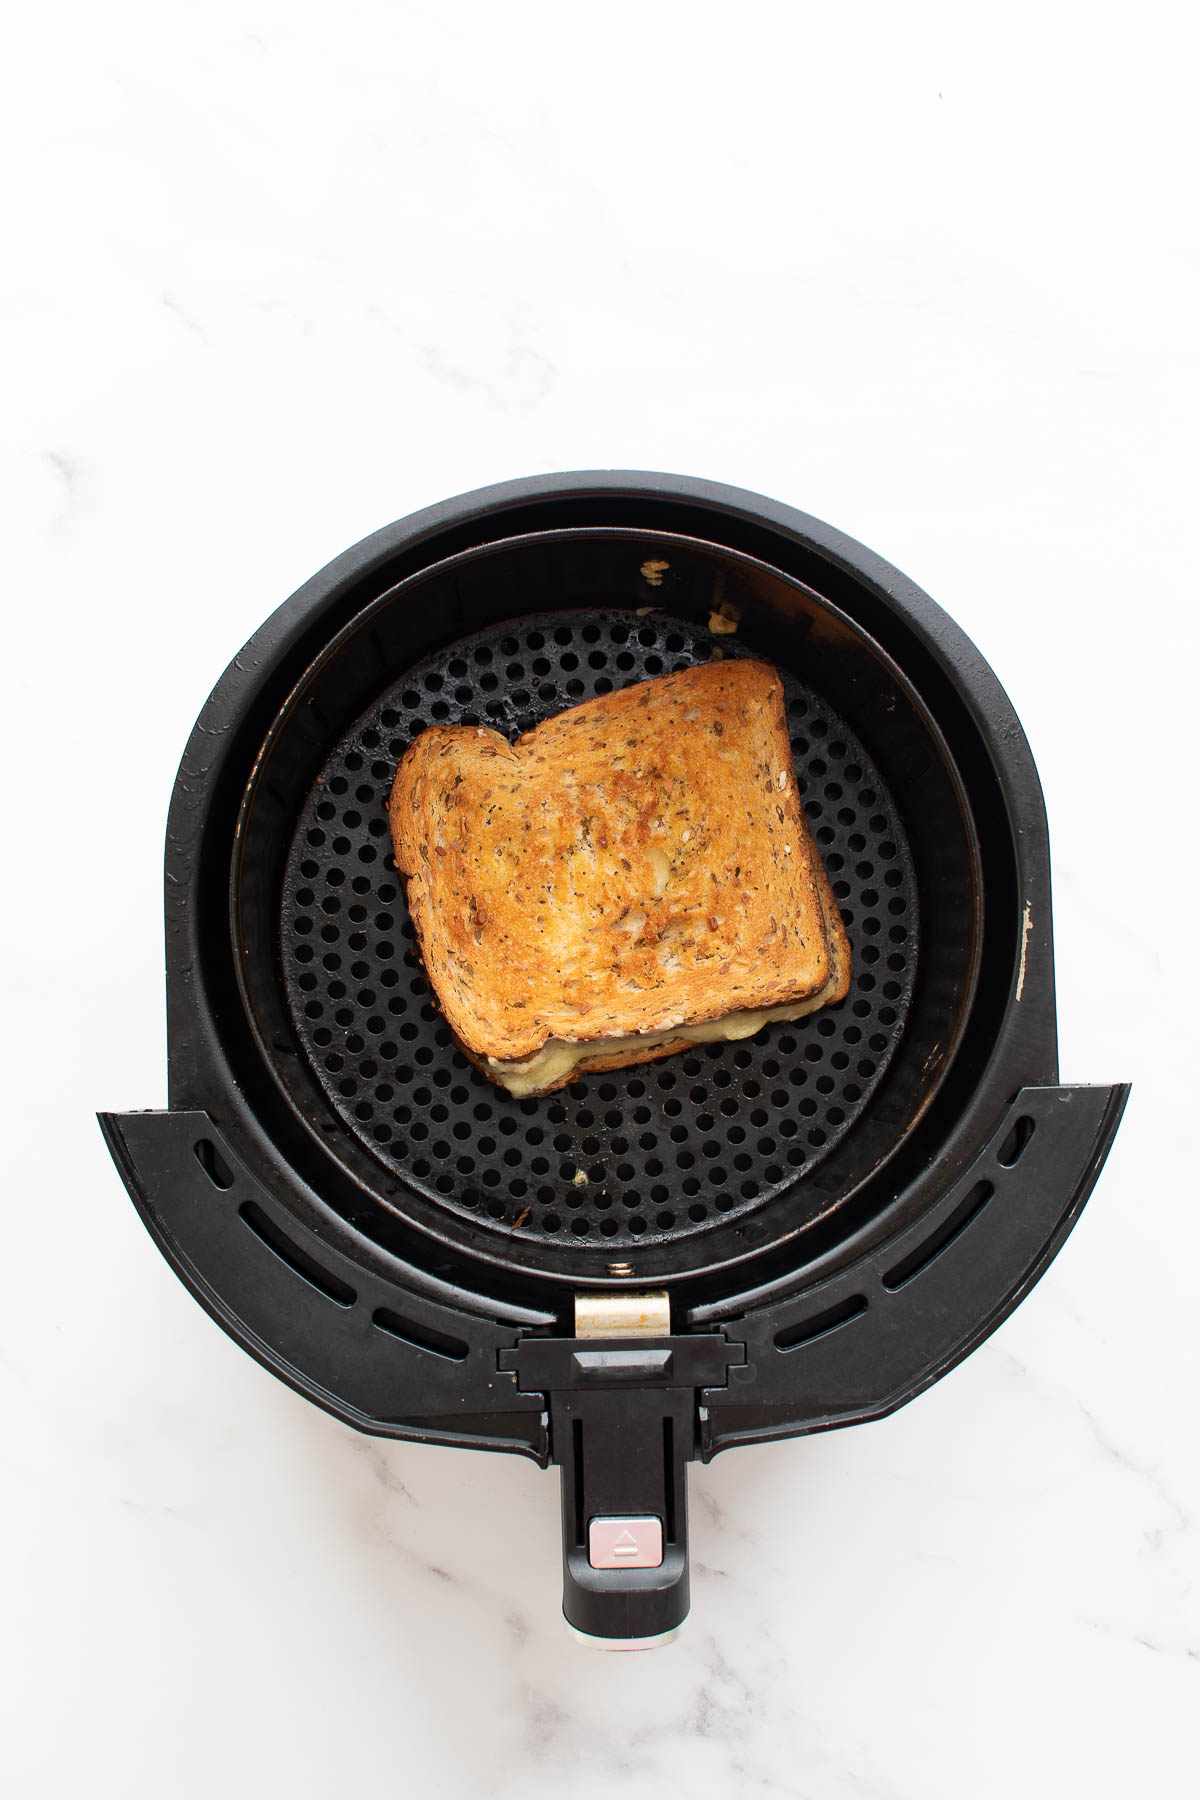 Air fryer with grilled cheese sandwich.